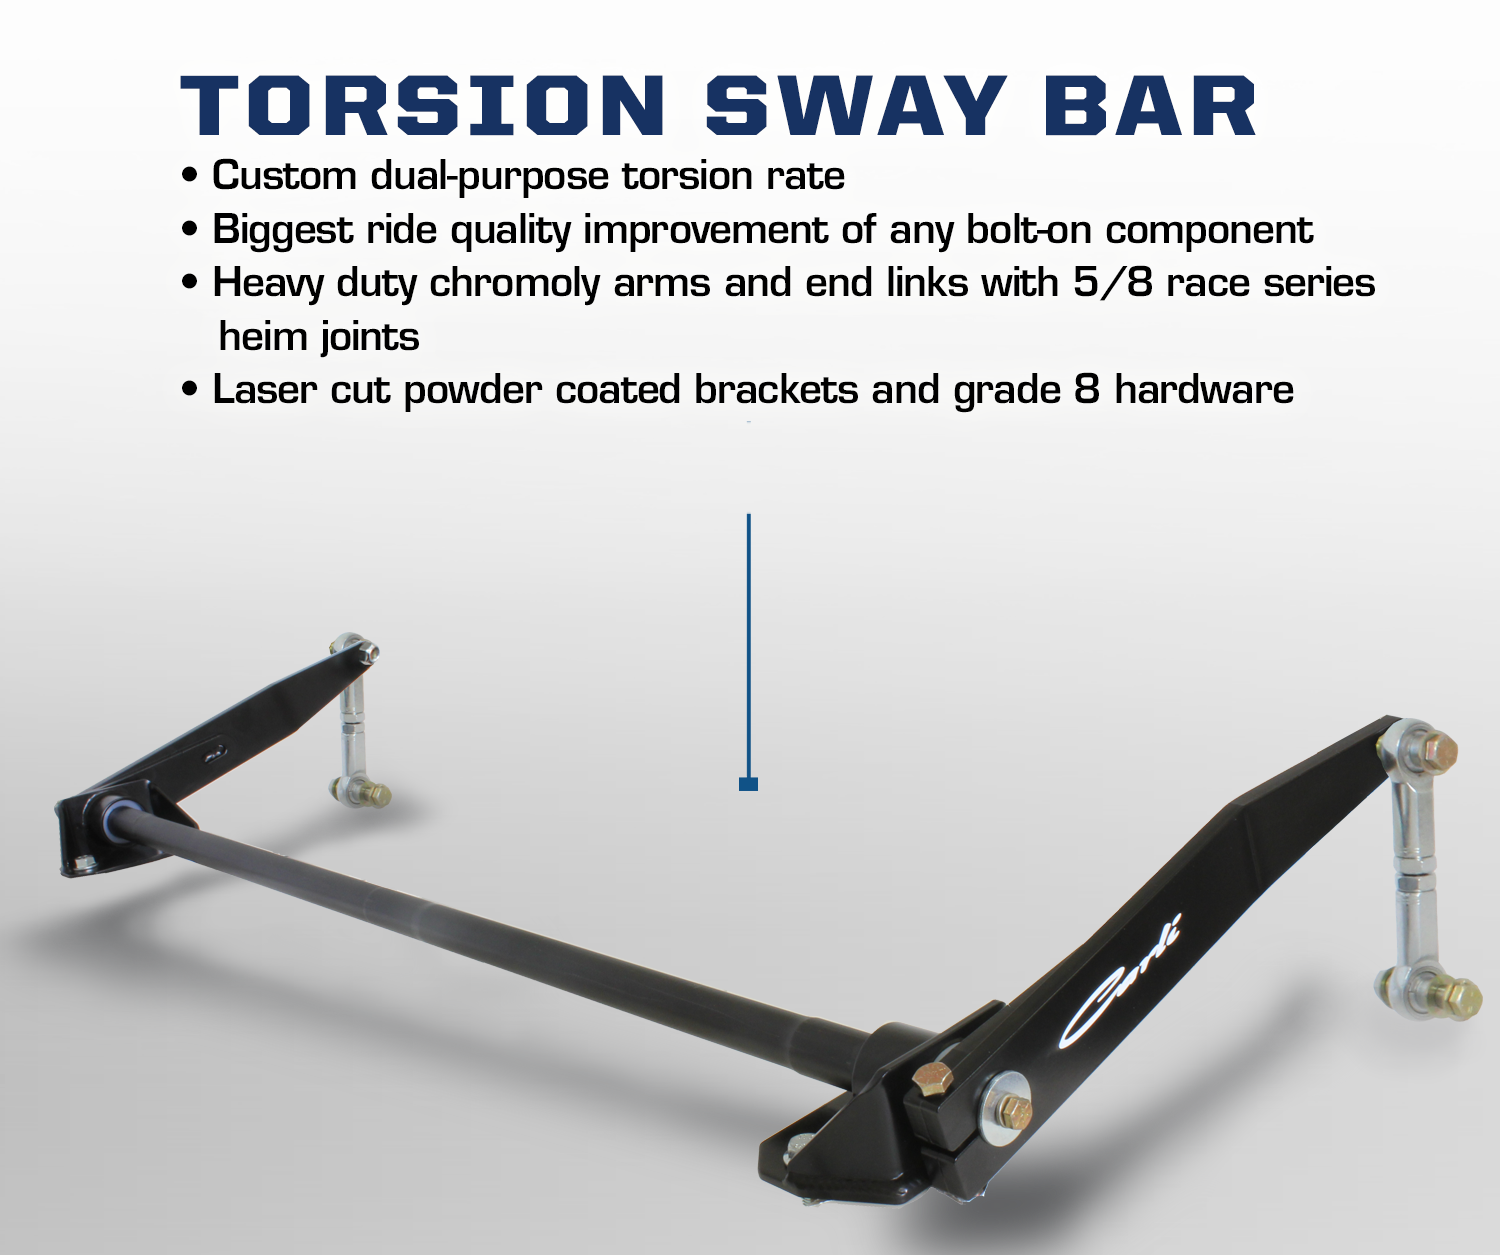 Carli Dodge Ram 2500 Torsion Sway Bar